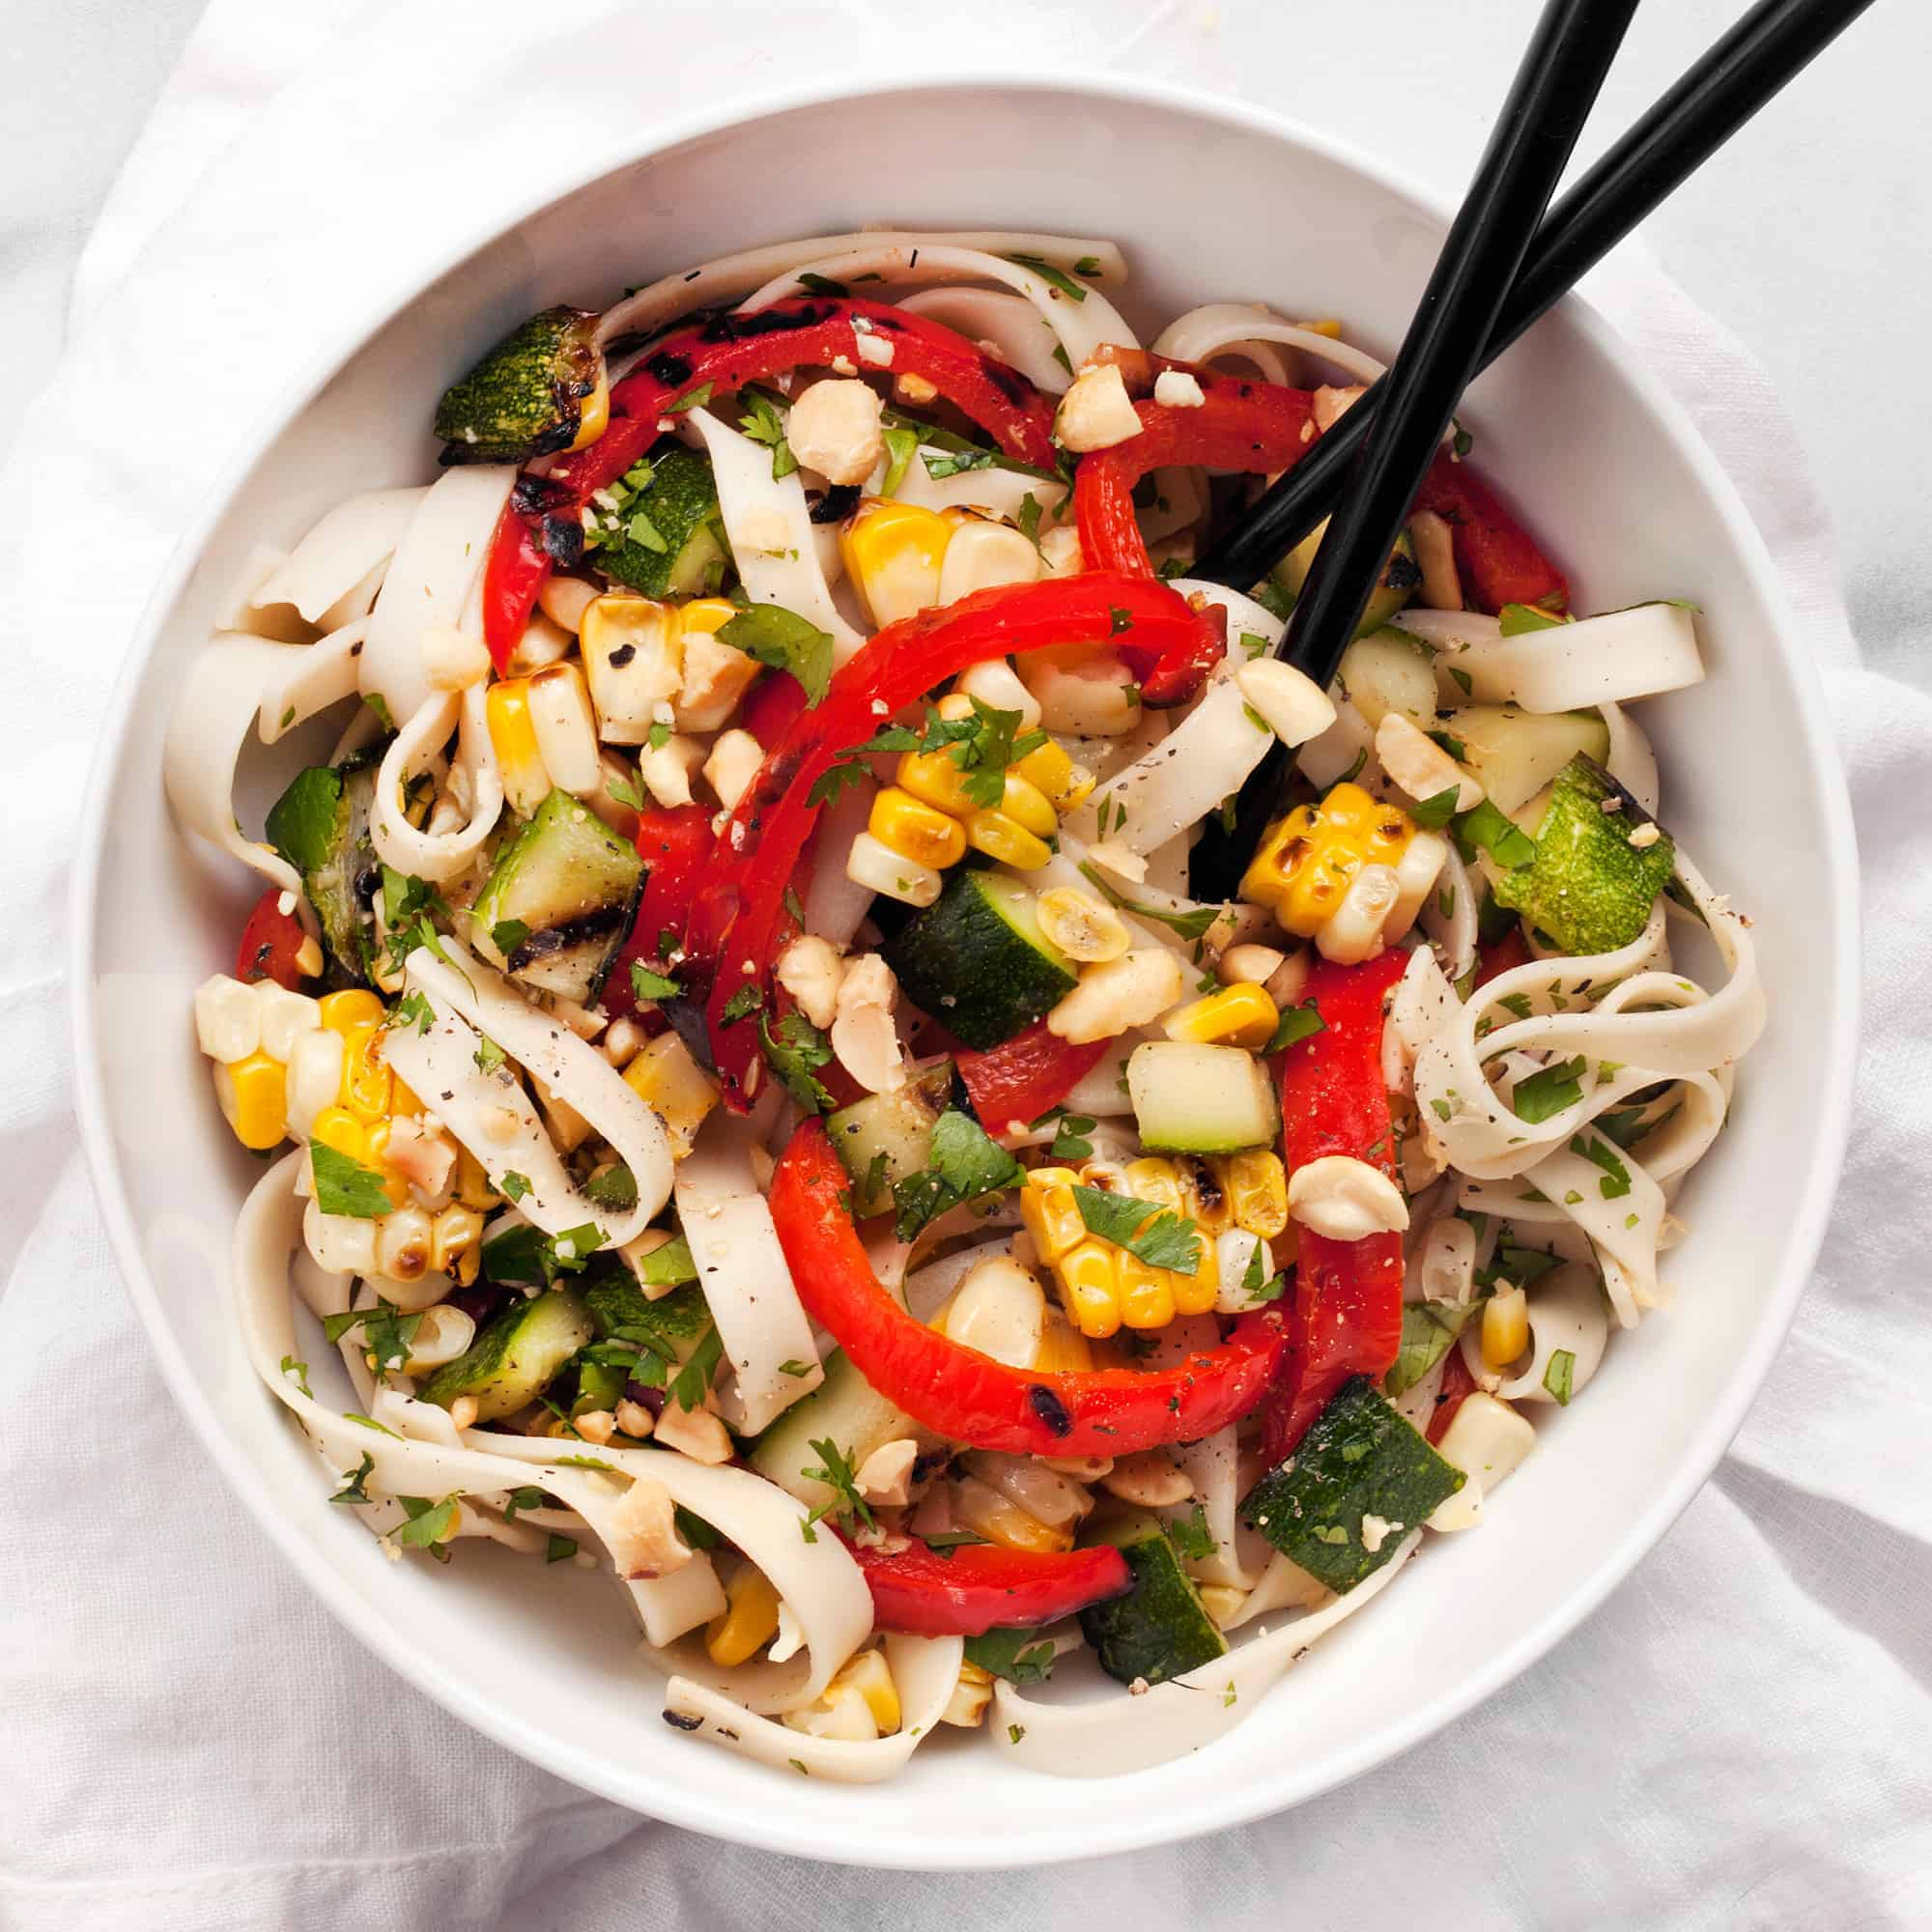 Peanut Udon Noodles with Grilled Vegetables